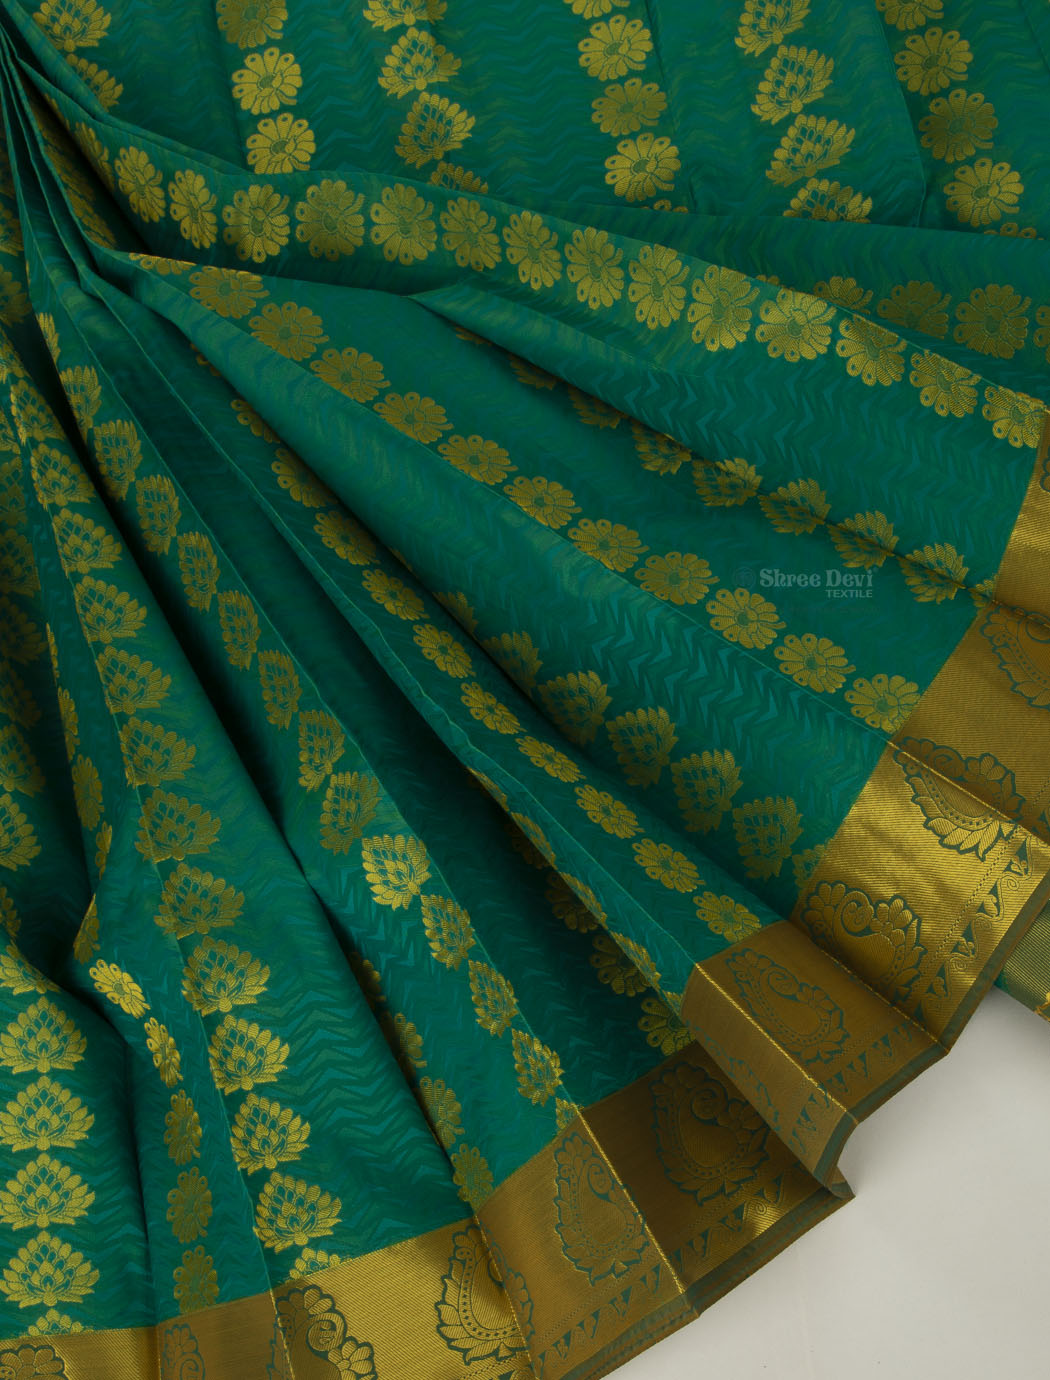 Pine Green Visiri Madippu Saree with Golden Floral Zari Pattern